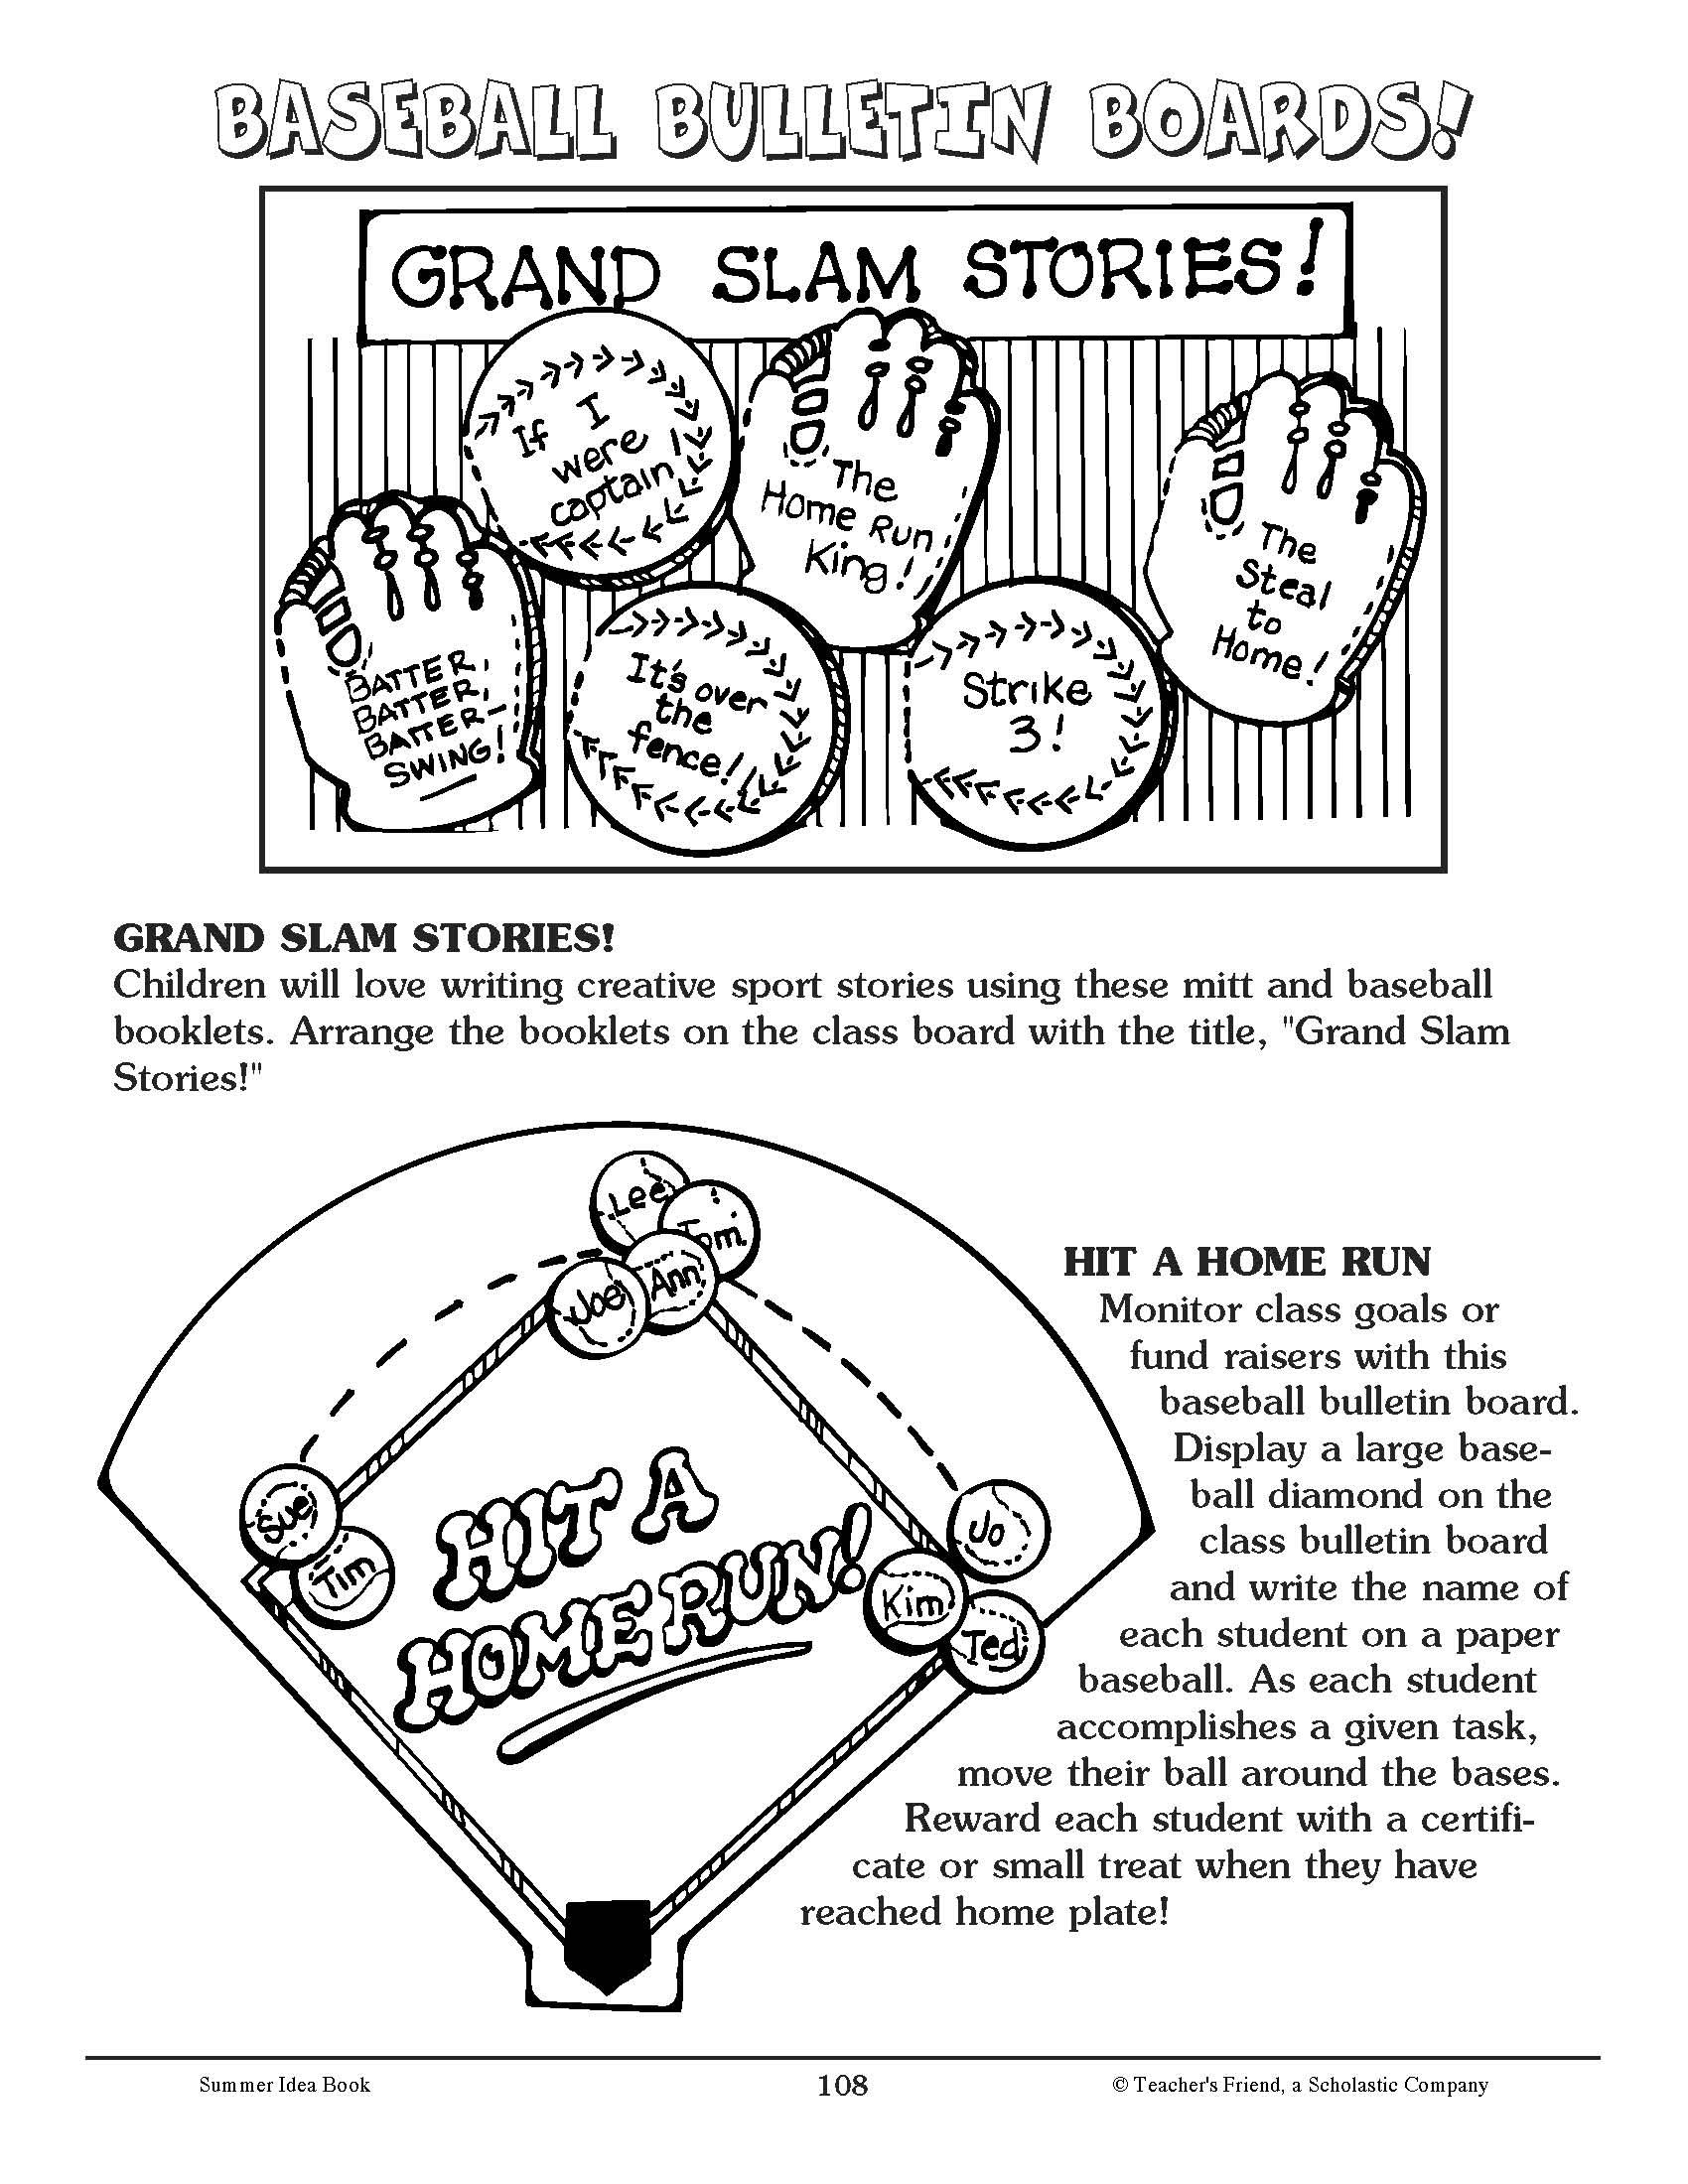 Get Students Excited For Spring With These Fun Baseball